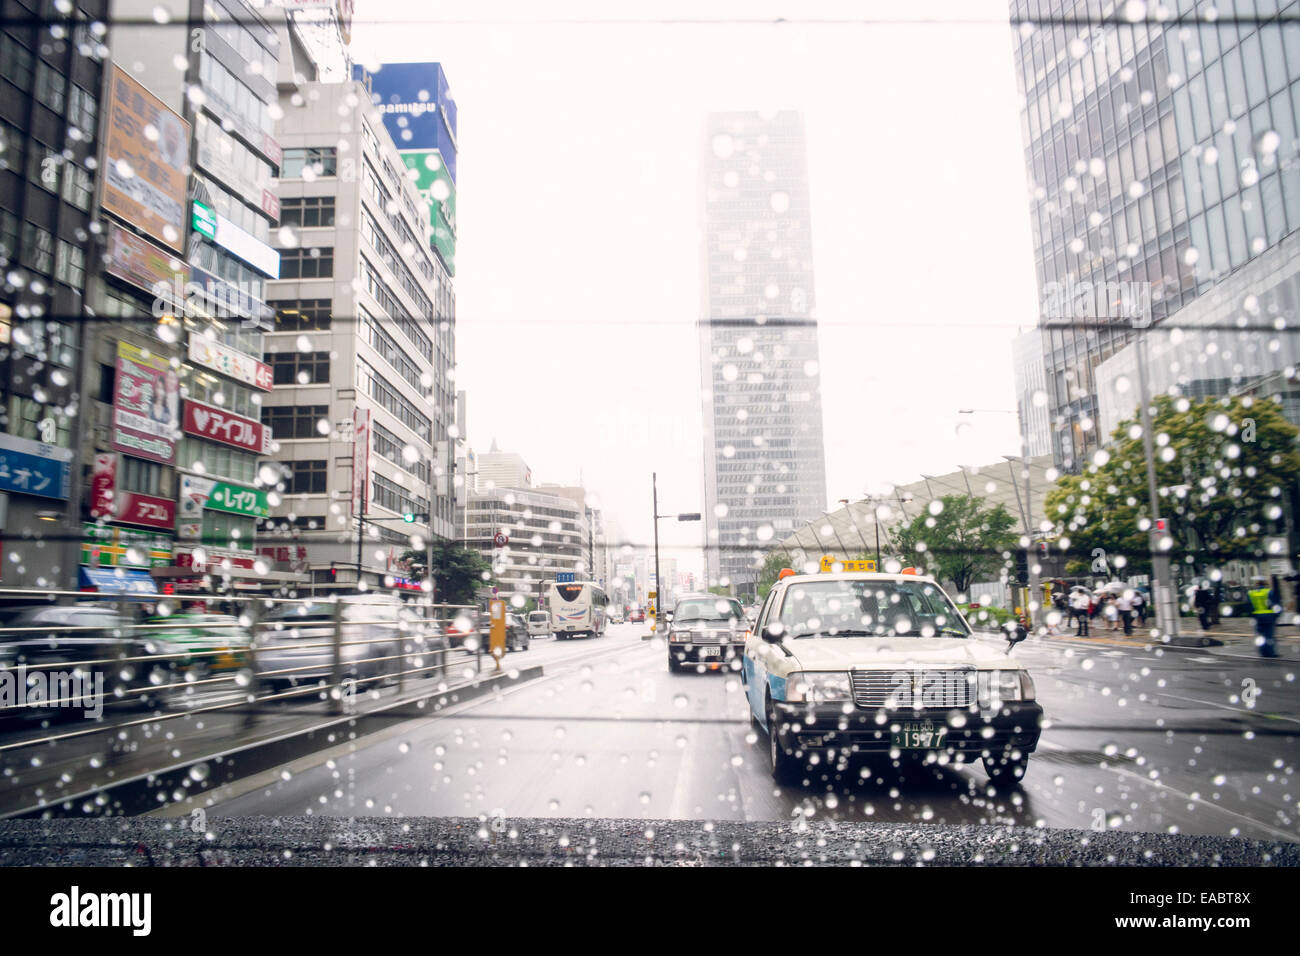 Japan Tokyo View through the rear window of a taxi - Stock Image